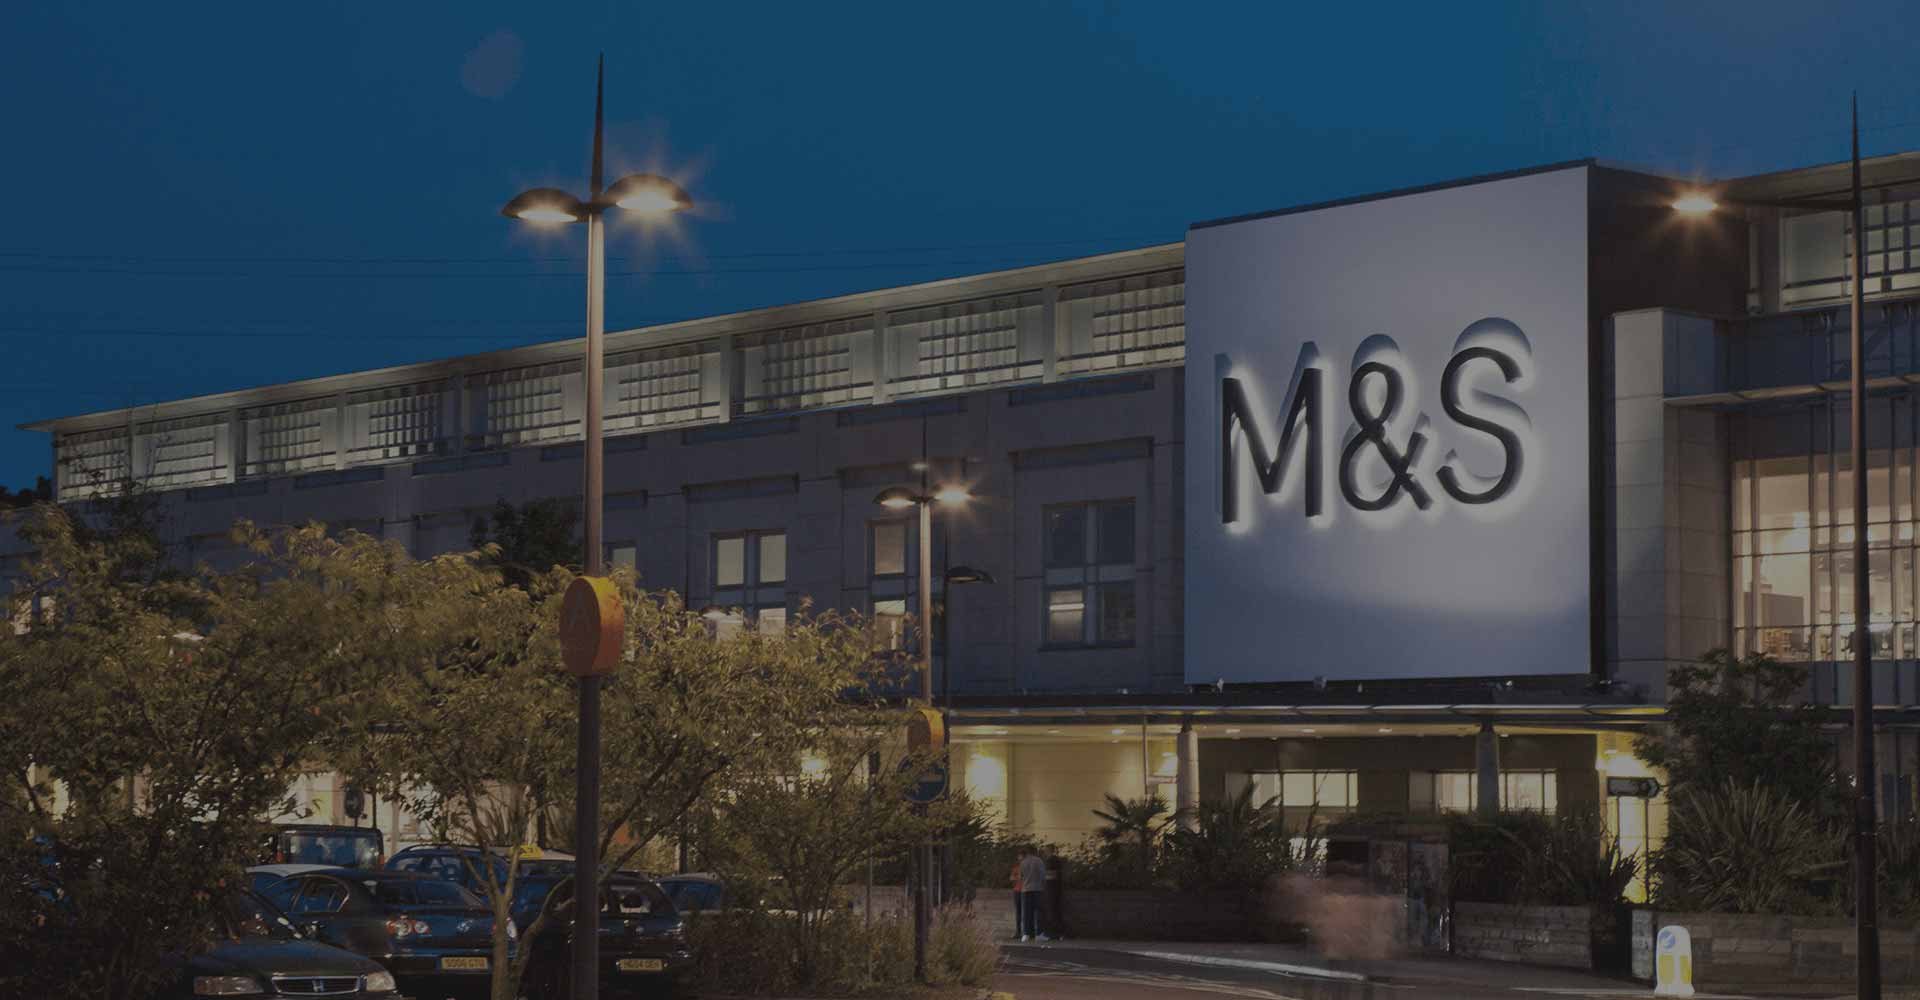 Marks & Spencer increase conversion rate through website optimisation